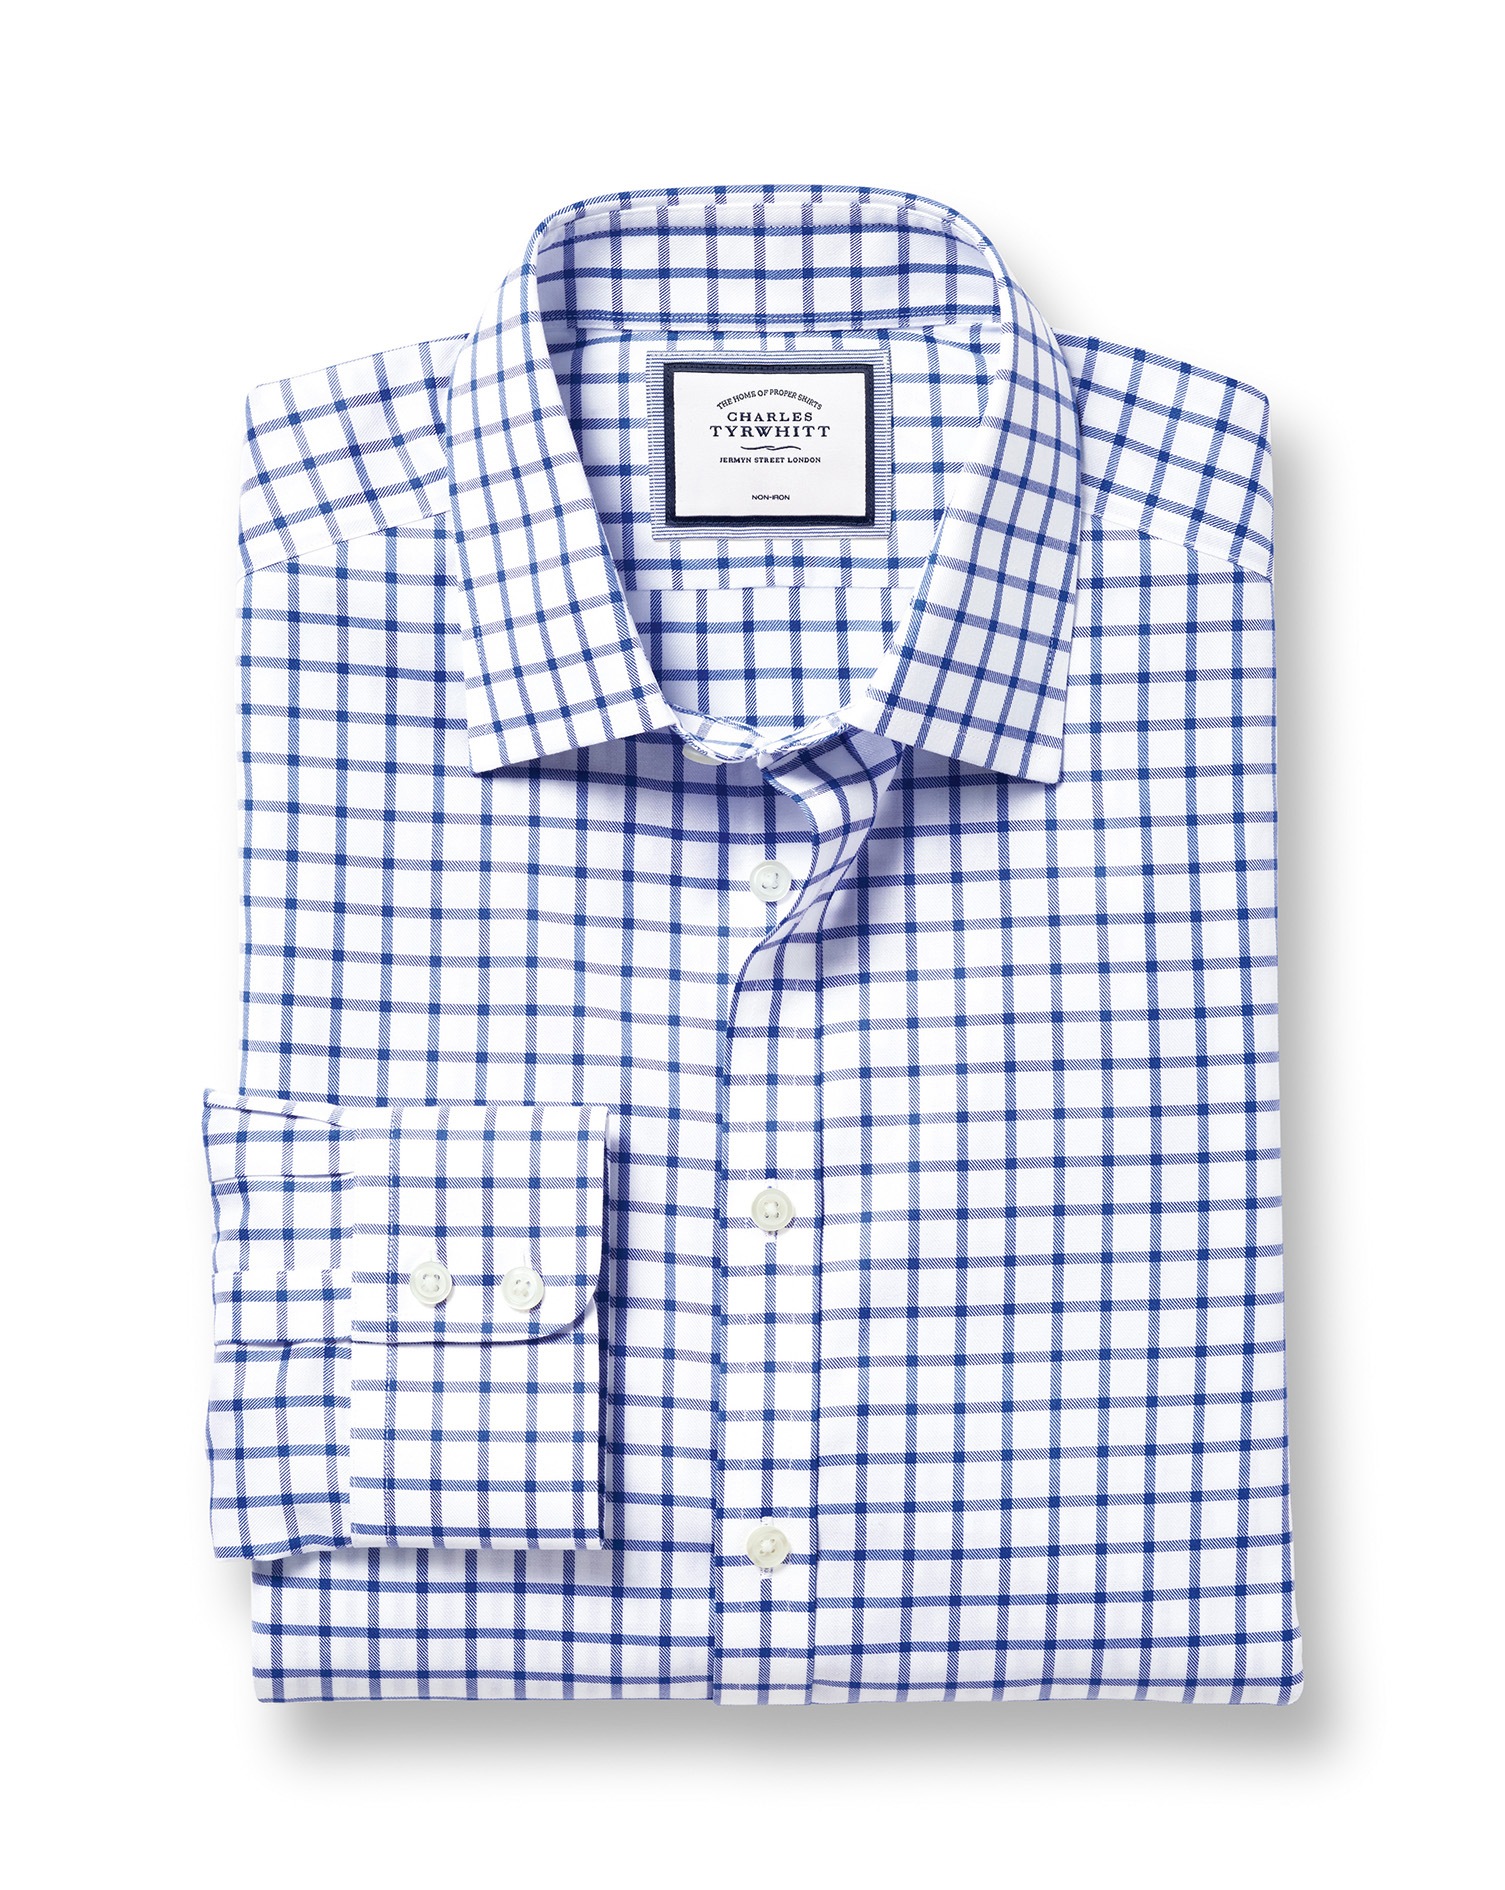 Slim Fit Non-Iron Twill Grid Check Royal Blue Cotton Formal Shirt Single Cuff Size 16/35 by Charles